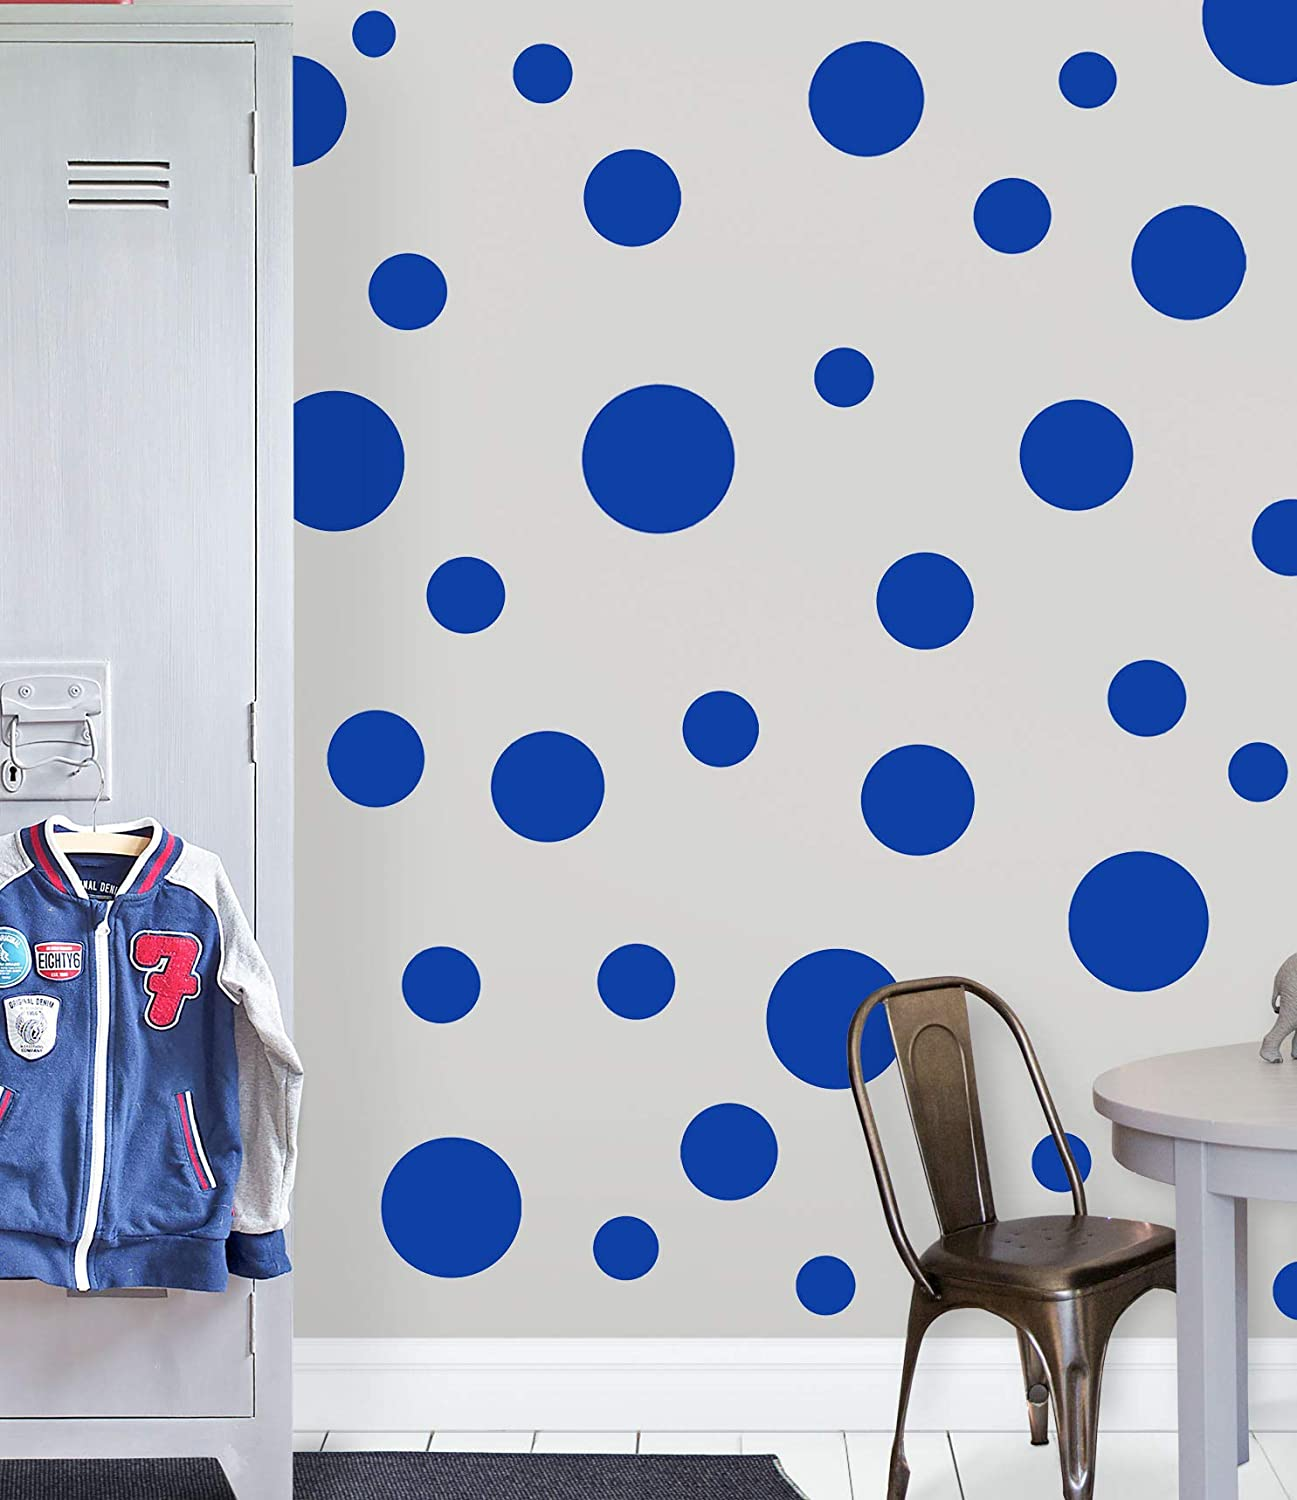 "Polka Dot Wall Decals (63) Girls Room Wall Decor Stickers, Wall Dots, Vinyl Circle Peel & Stick DIY Bedroom, Playroom, Kids Room, Baby Nursery Toddler to Teen Bedroom Decoration 3"" - 6.5"" (Blue)"